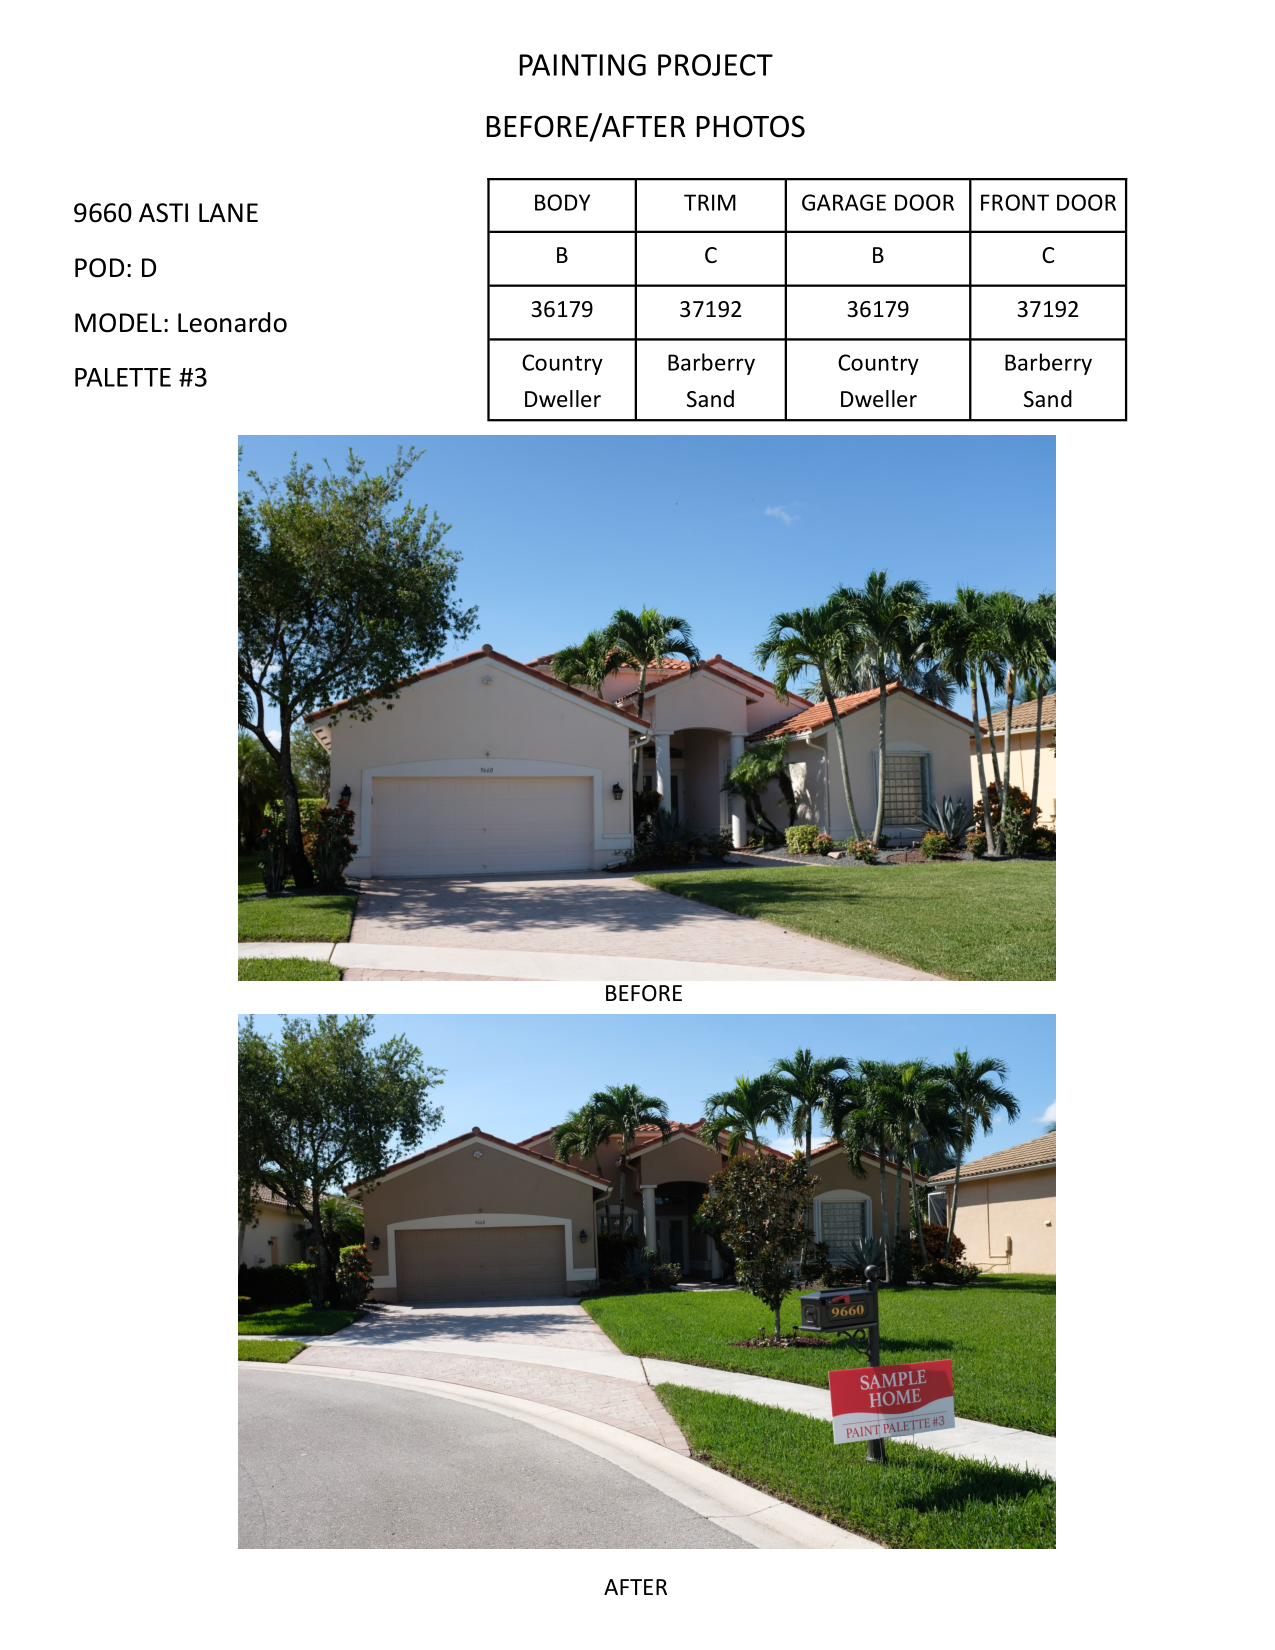 b4aftersample homes pictures-3.png